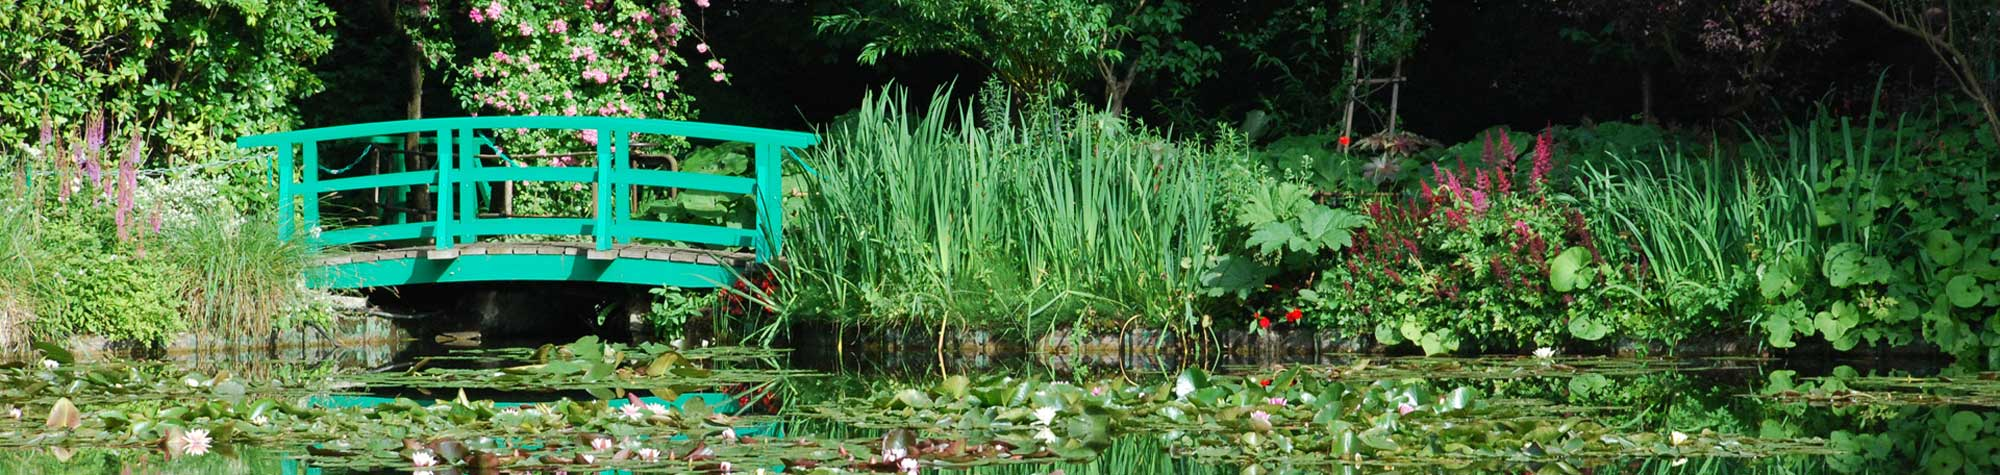 giverny-width